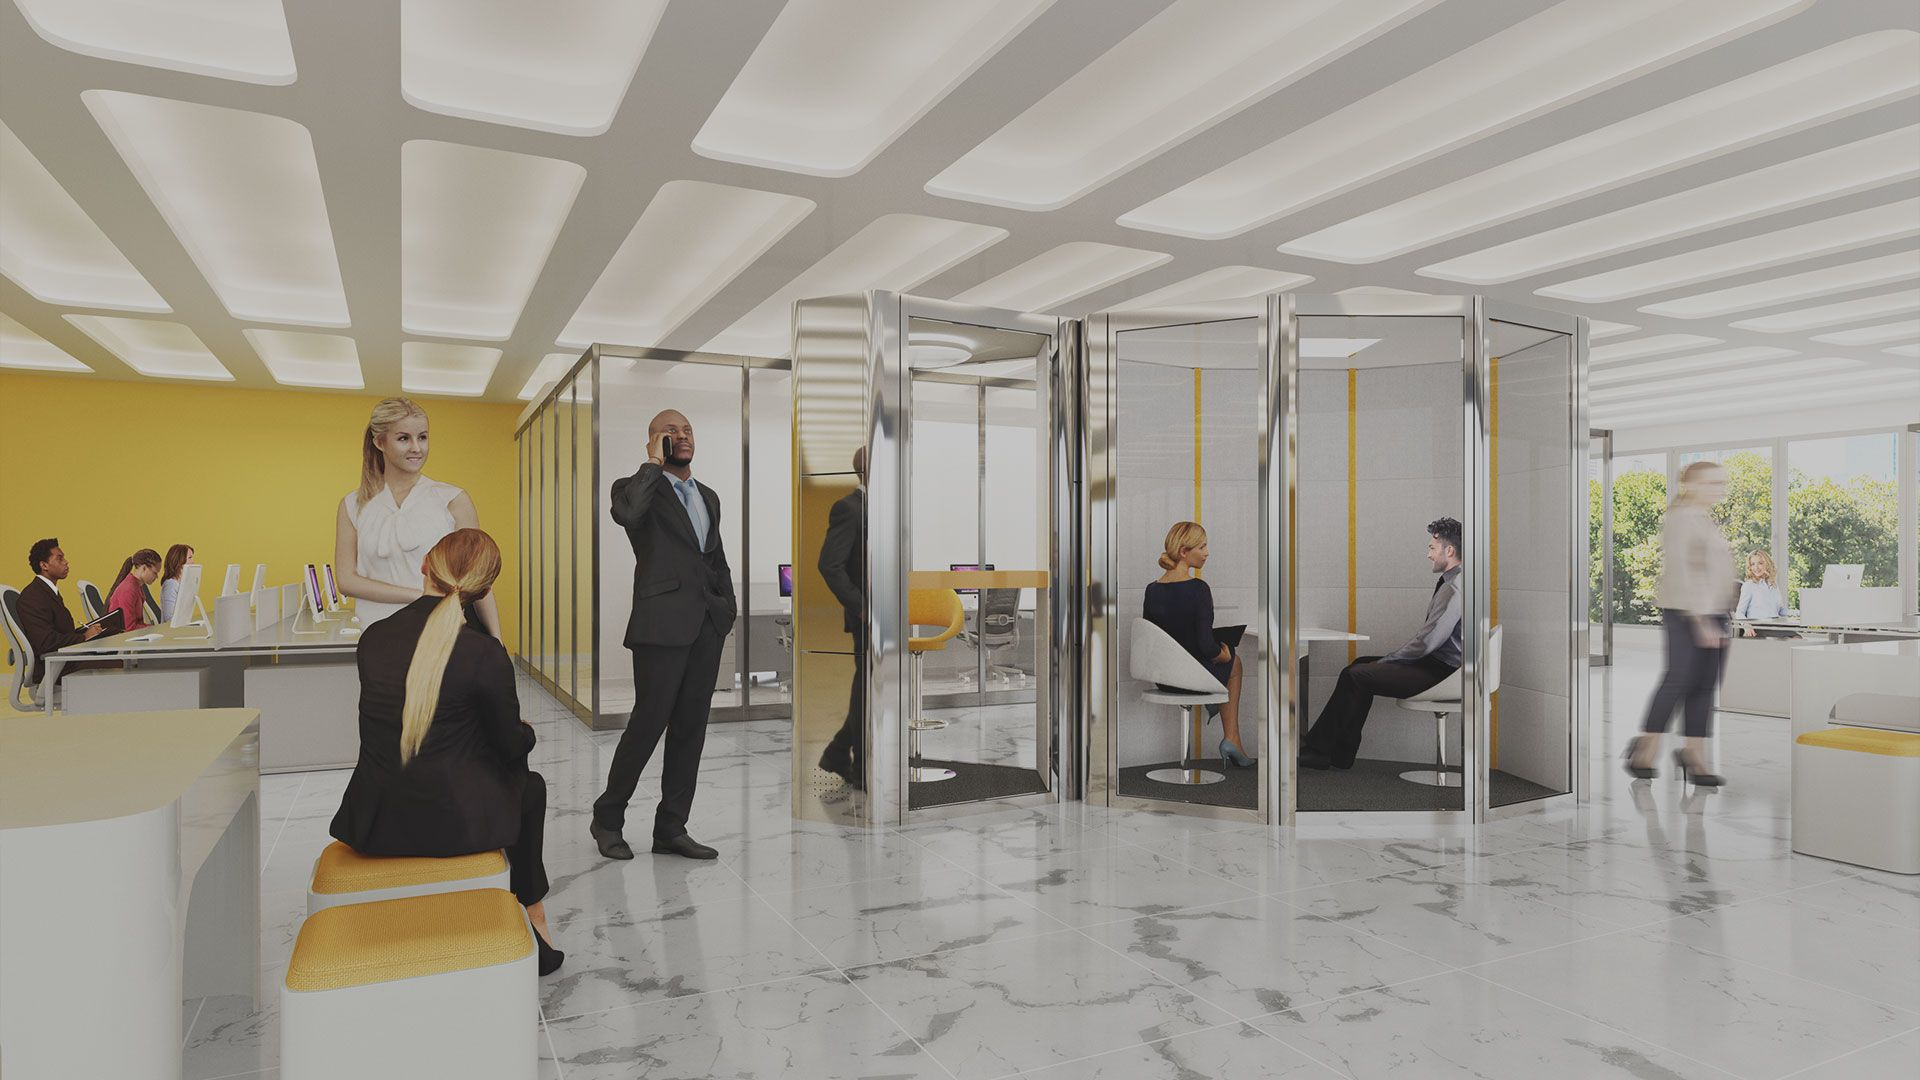 ZITTO Muraflex (With images) Glass wall systems, Glass